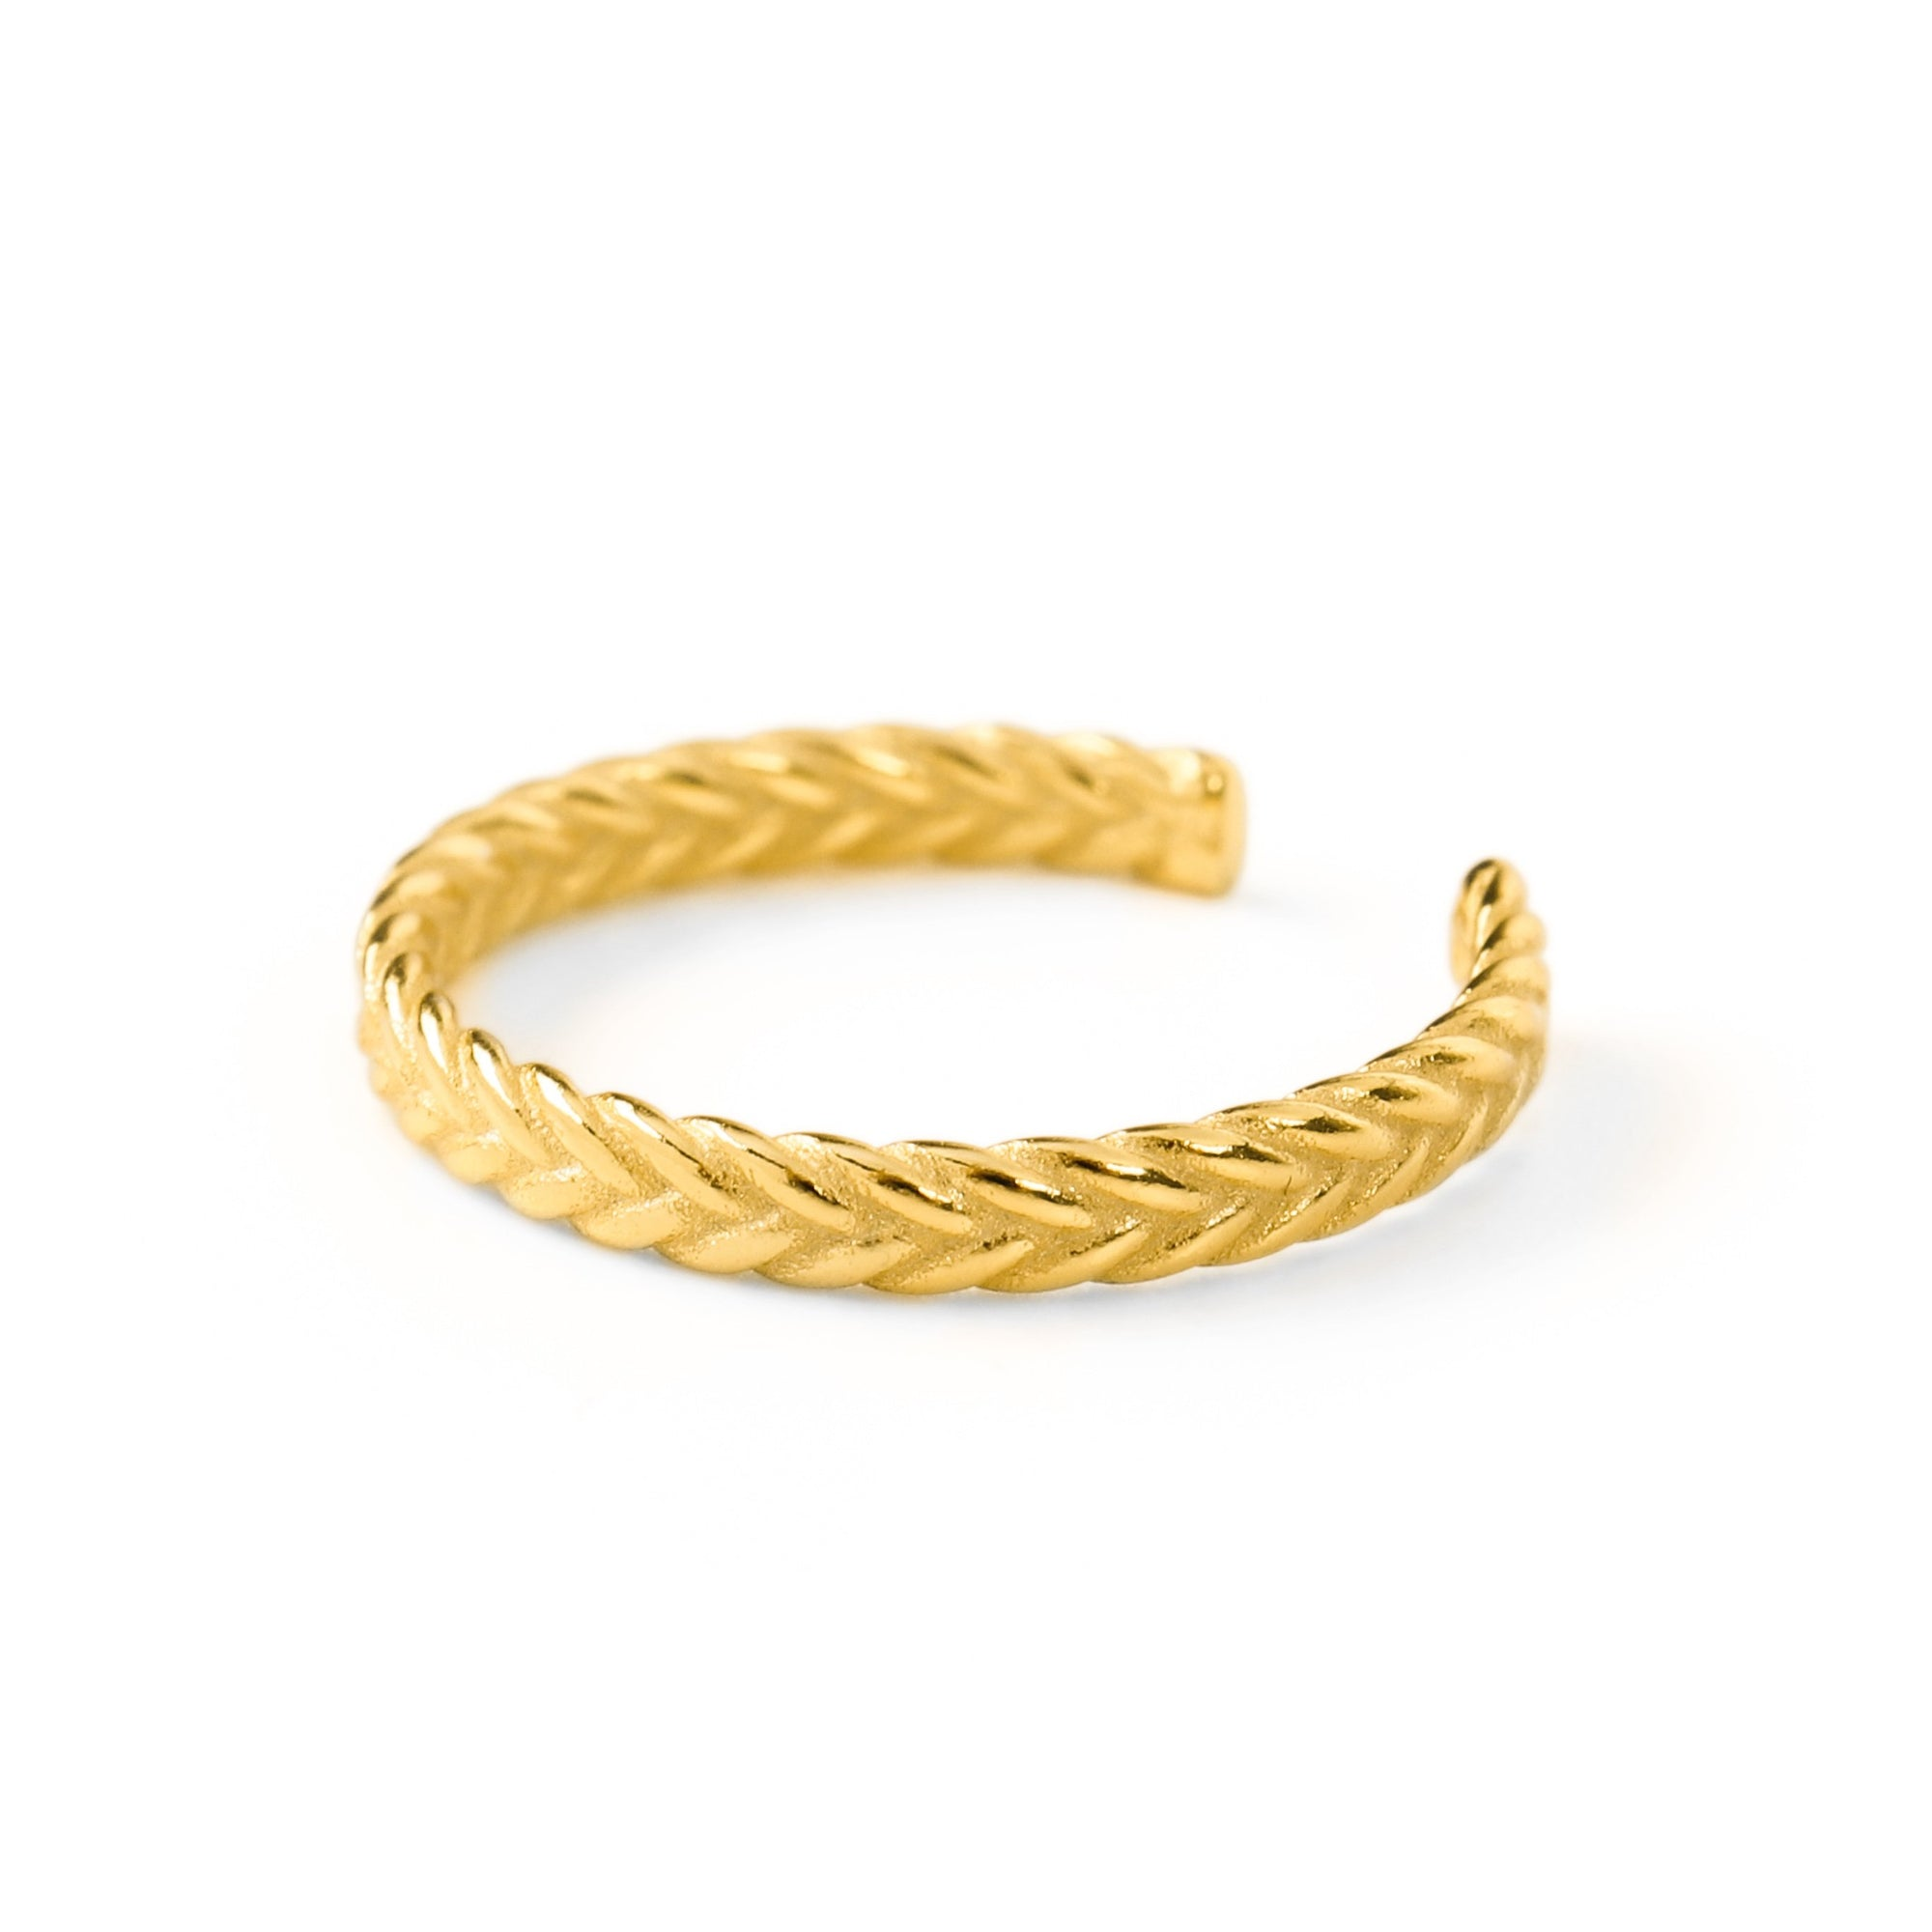 Braided Love Thumb Ring Gold - Wildflowers